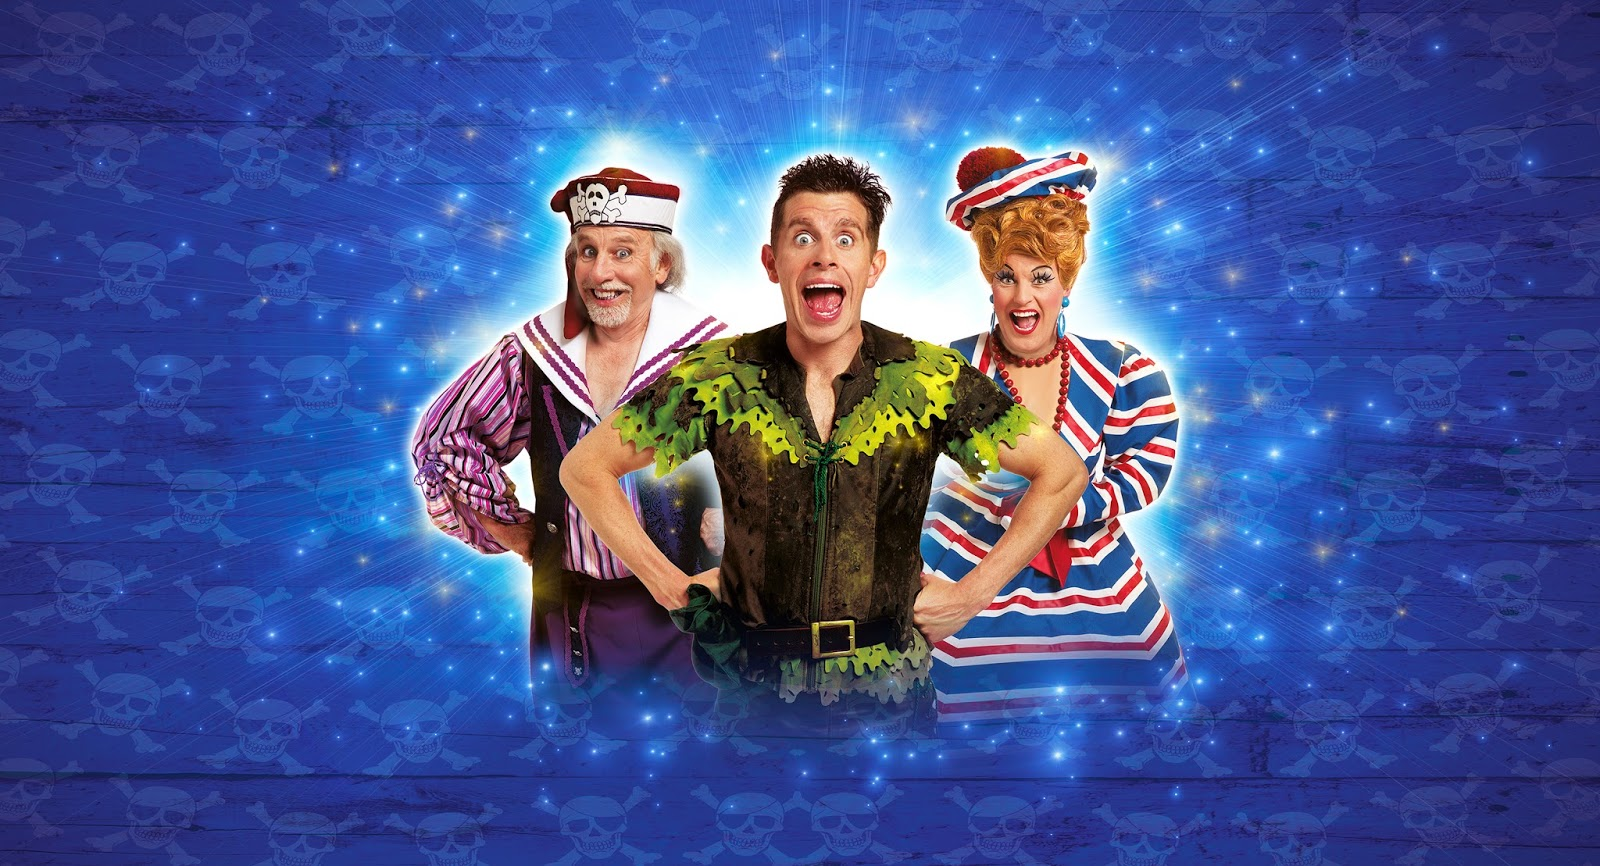 Newcastle Theatre Royal Pantomime 2017 - Peter Pan